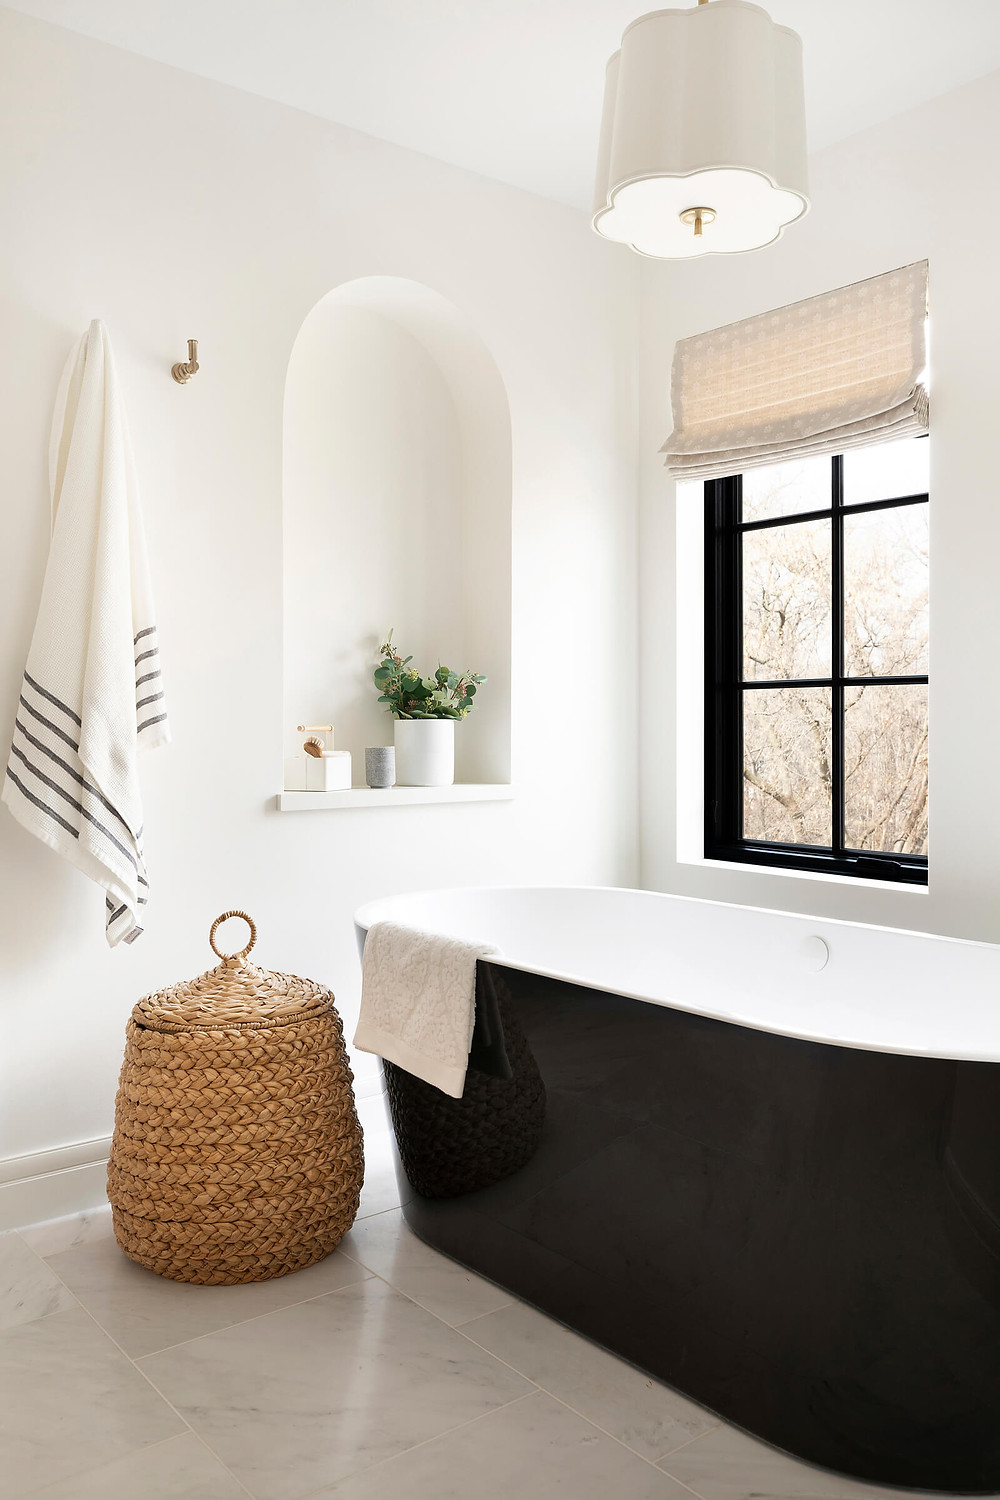 Owner's bathroom with arched niche detail, black freestanding bathtub and white marble tile floor.